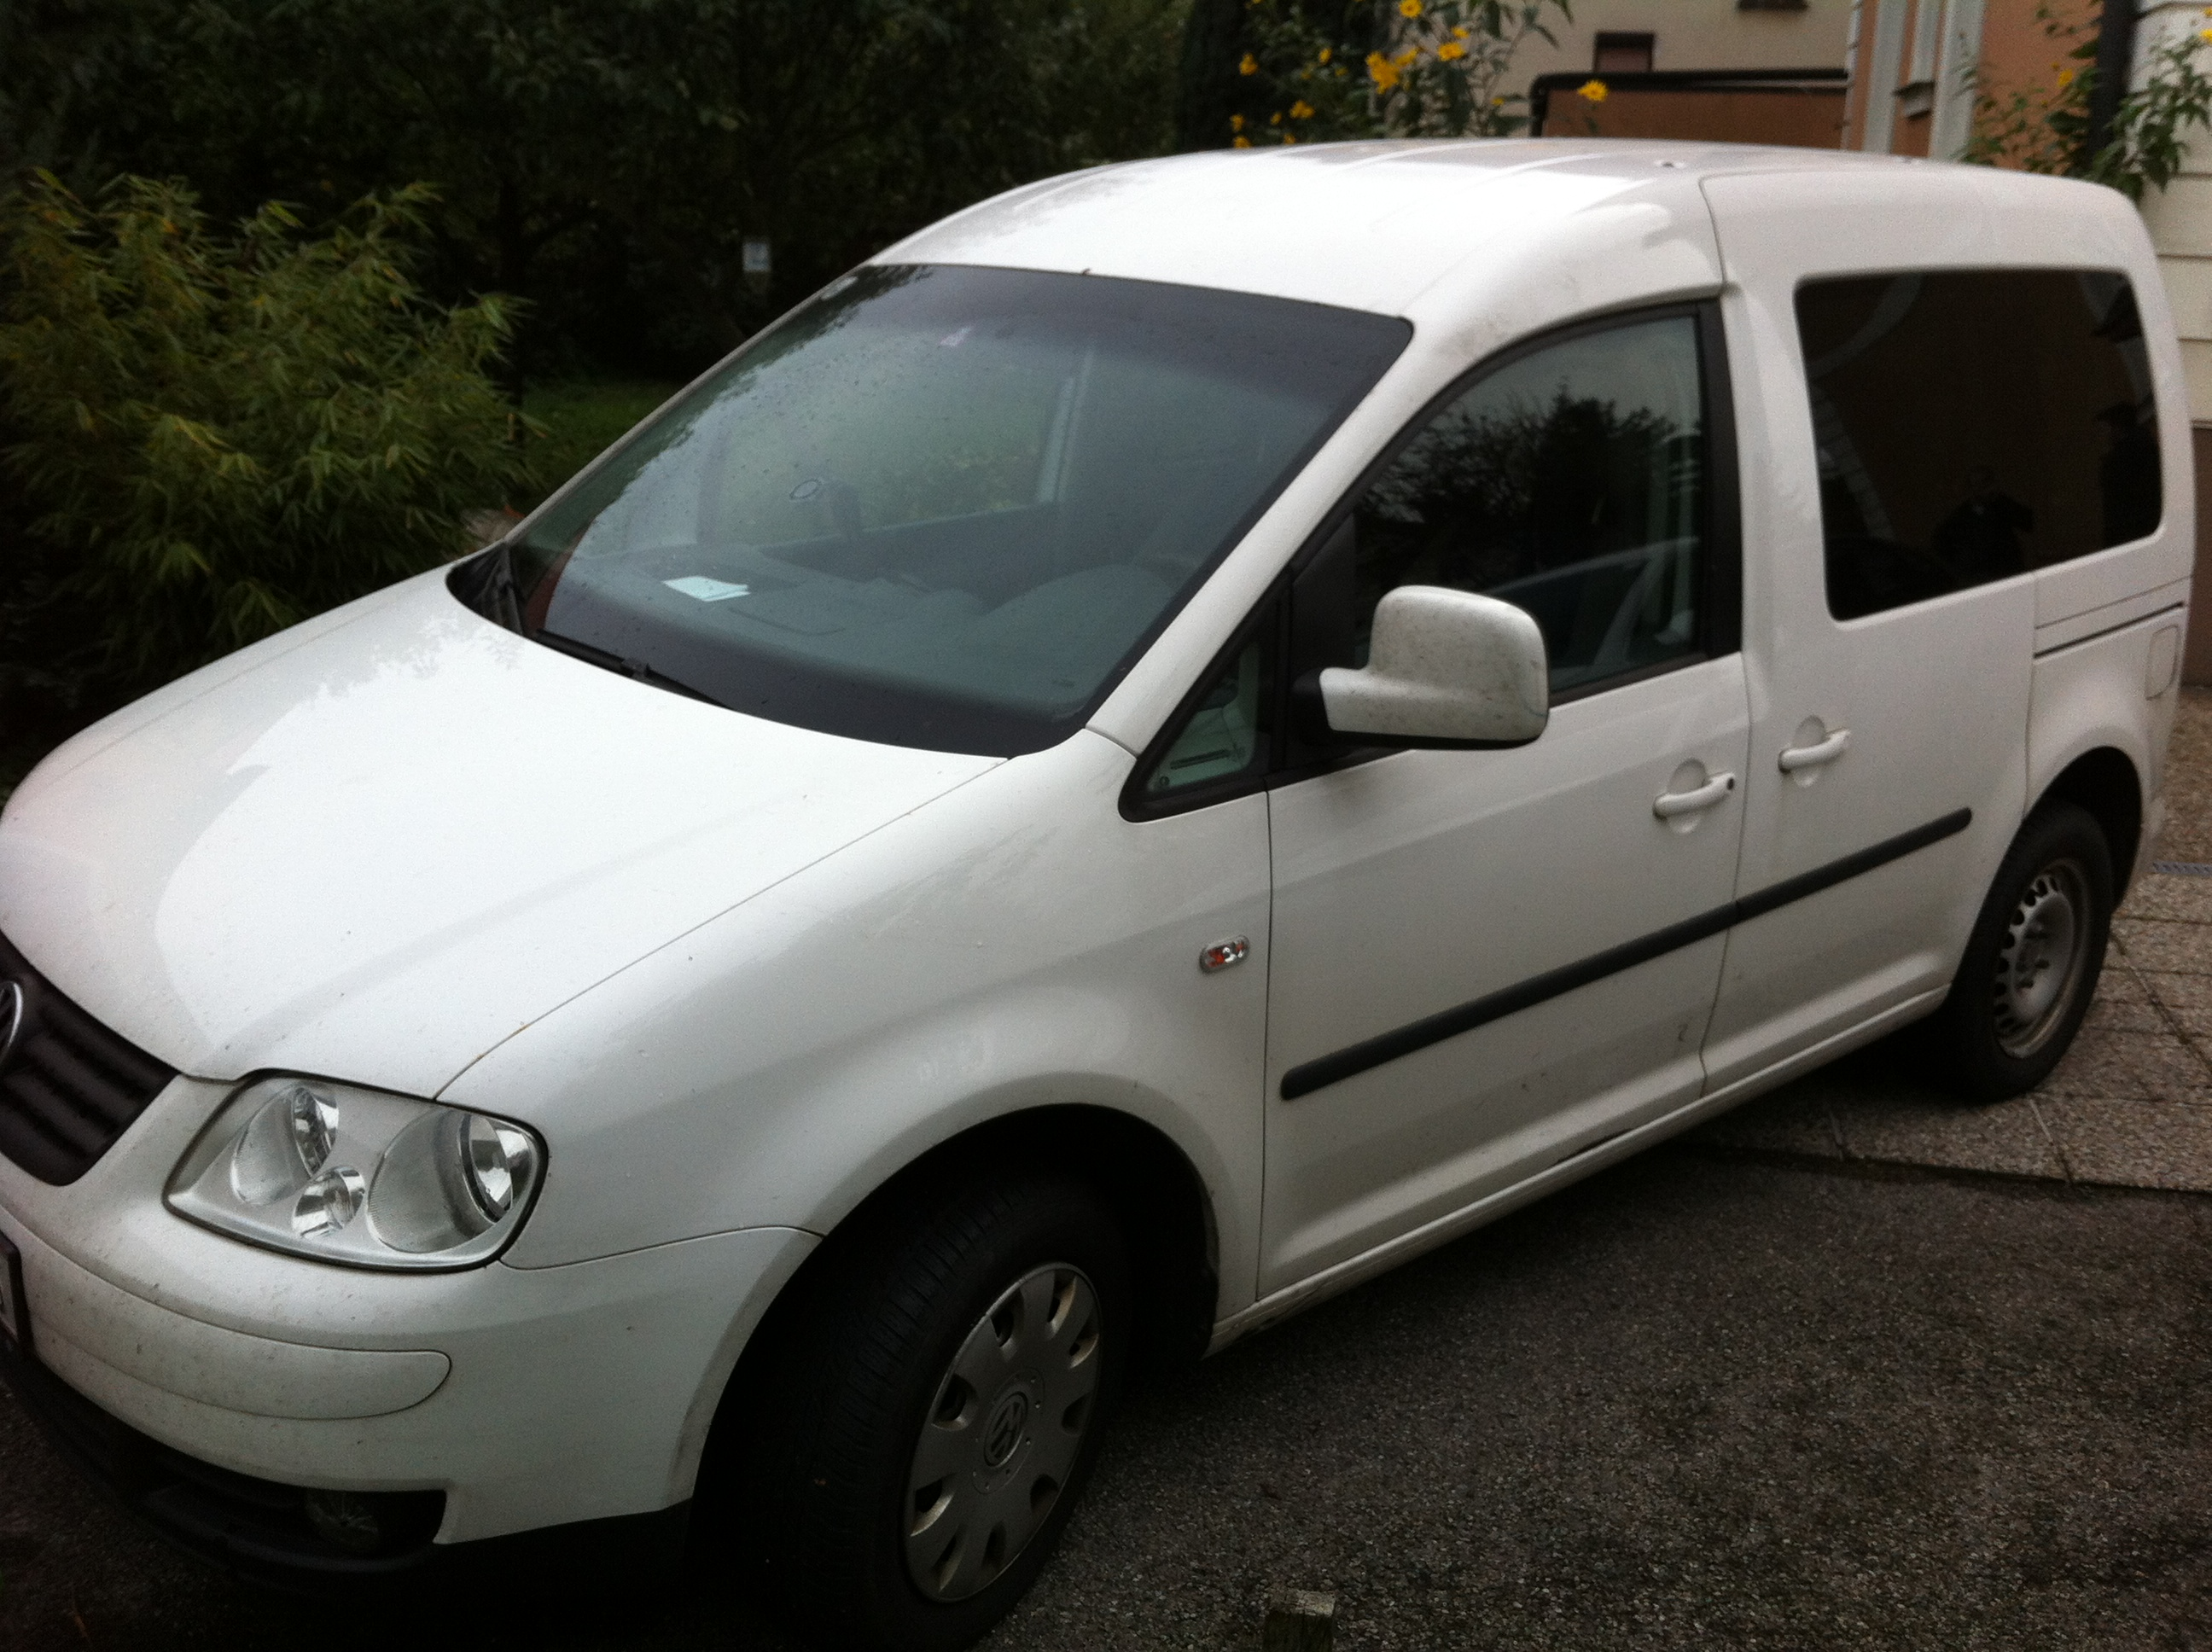 VW Caddy - € 4900